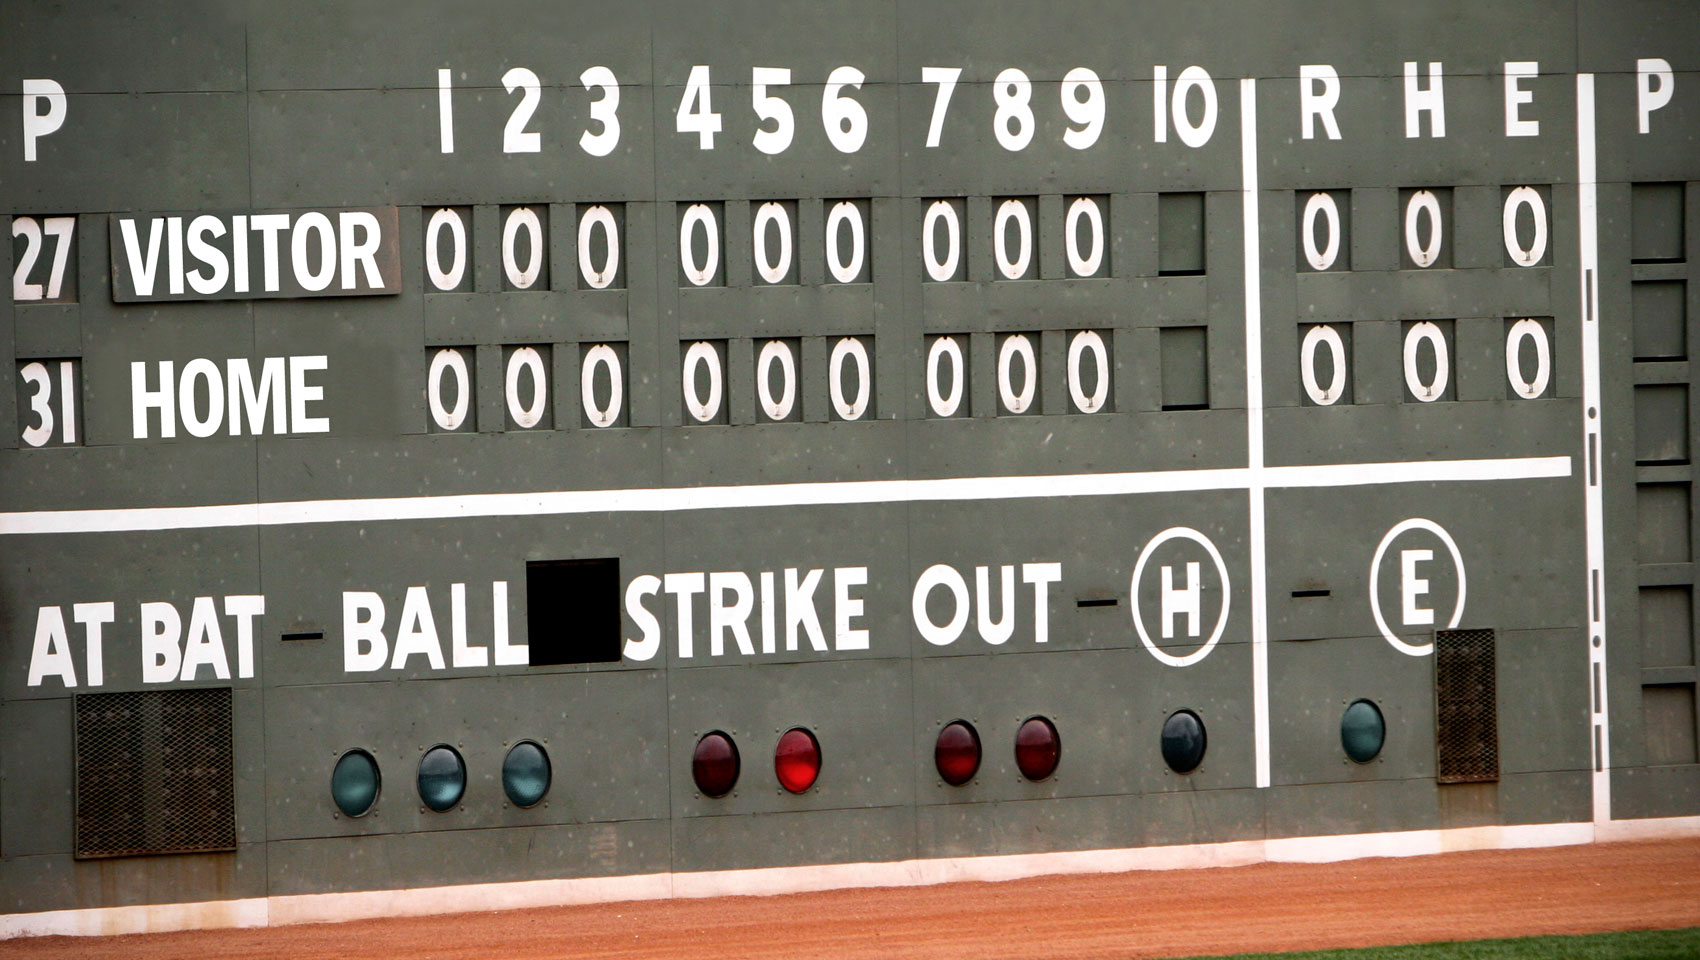 Black and white mlb outfield scoreboard displaying visitors vs home and 10 hittings with zeros across the board